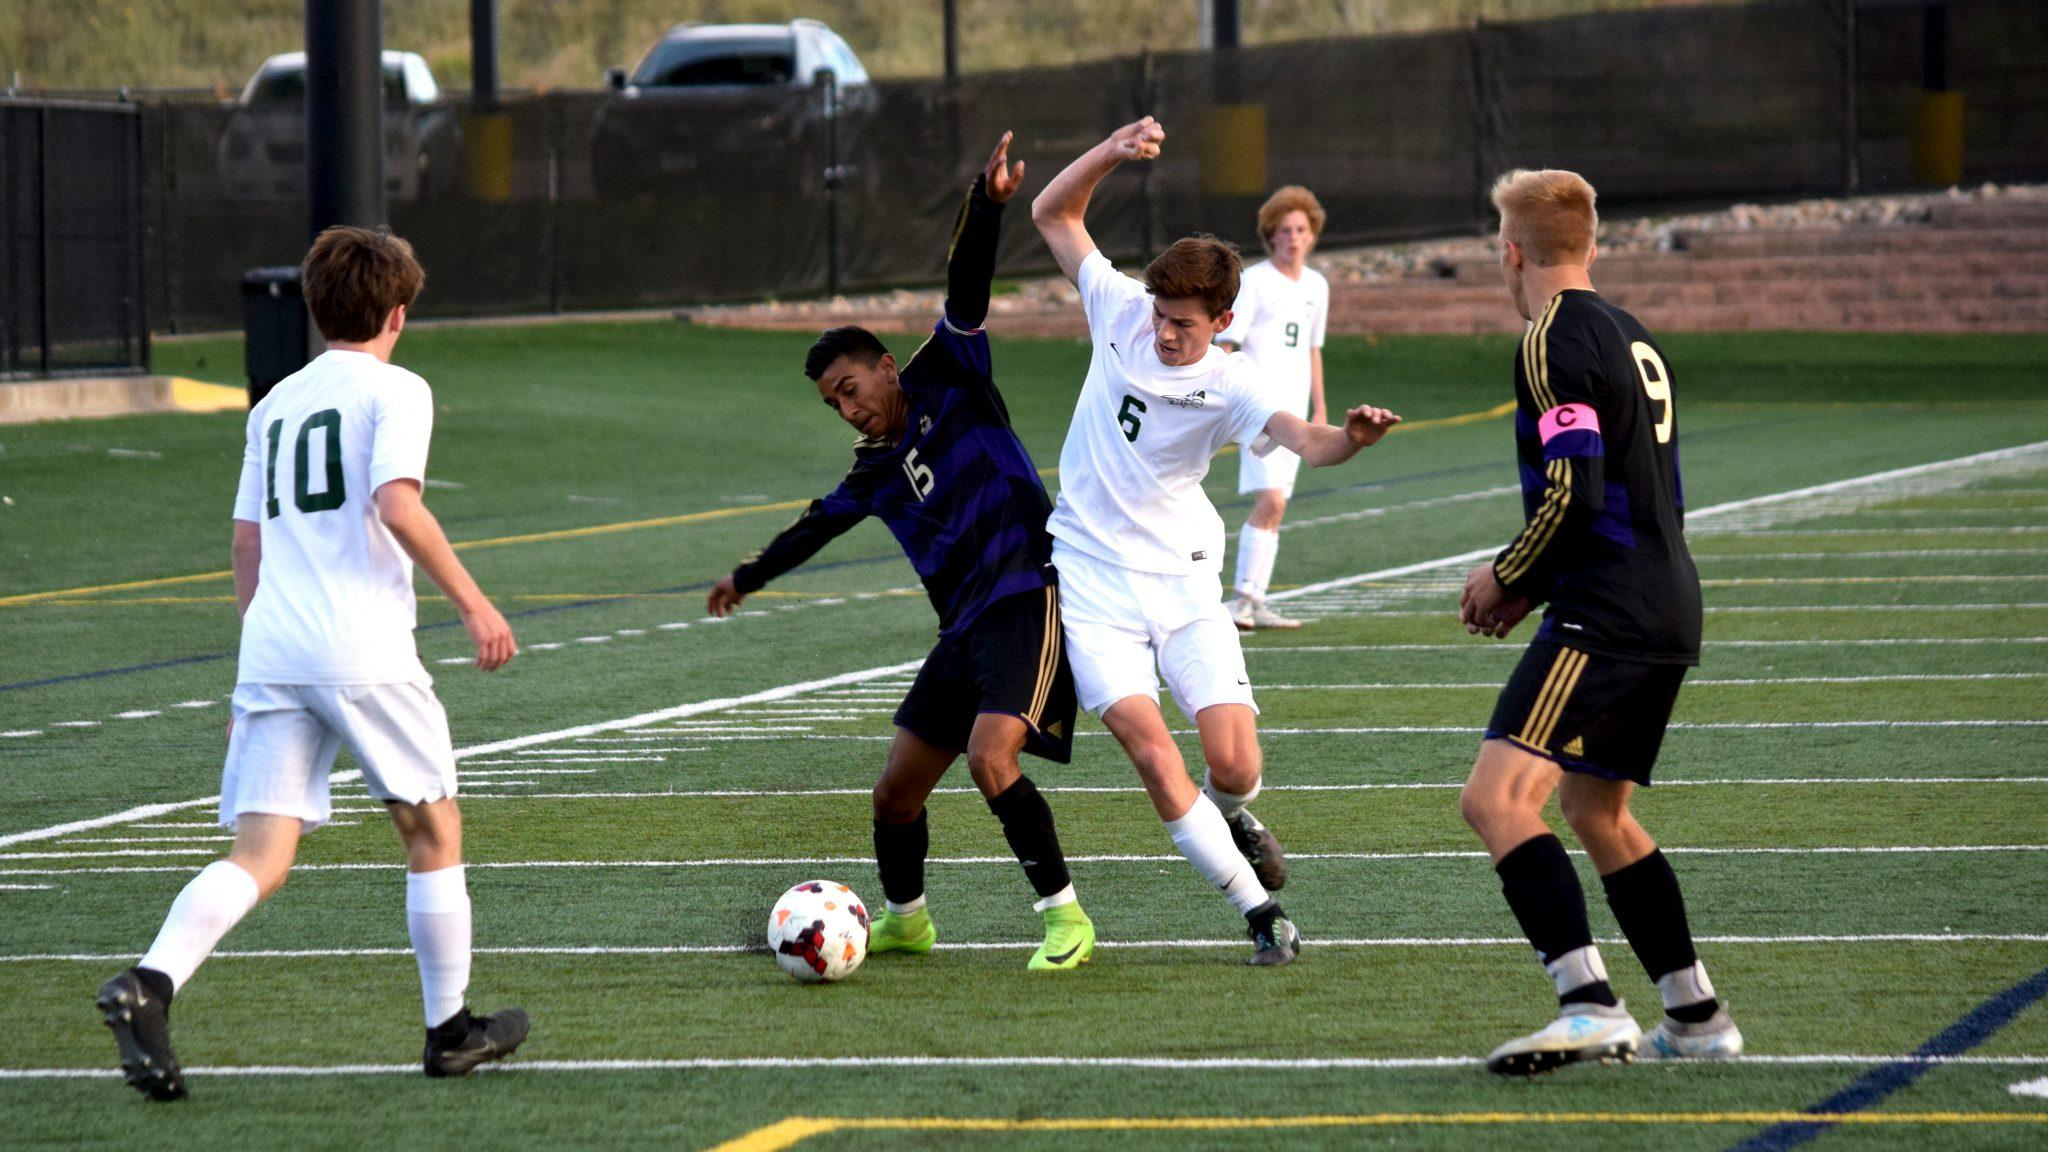 PHOTOS: Men's Varsity Soccer vs. Ft. Collins